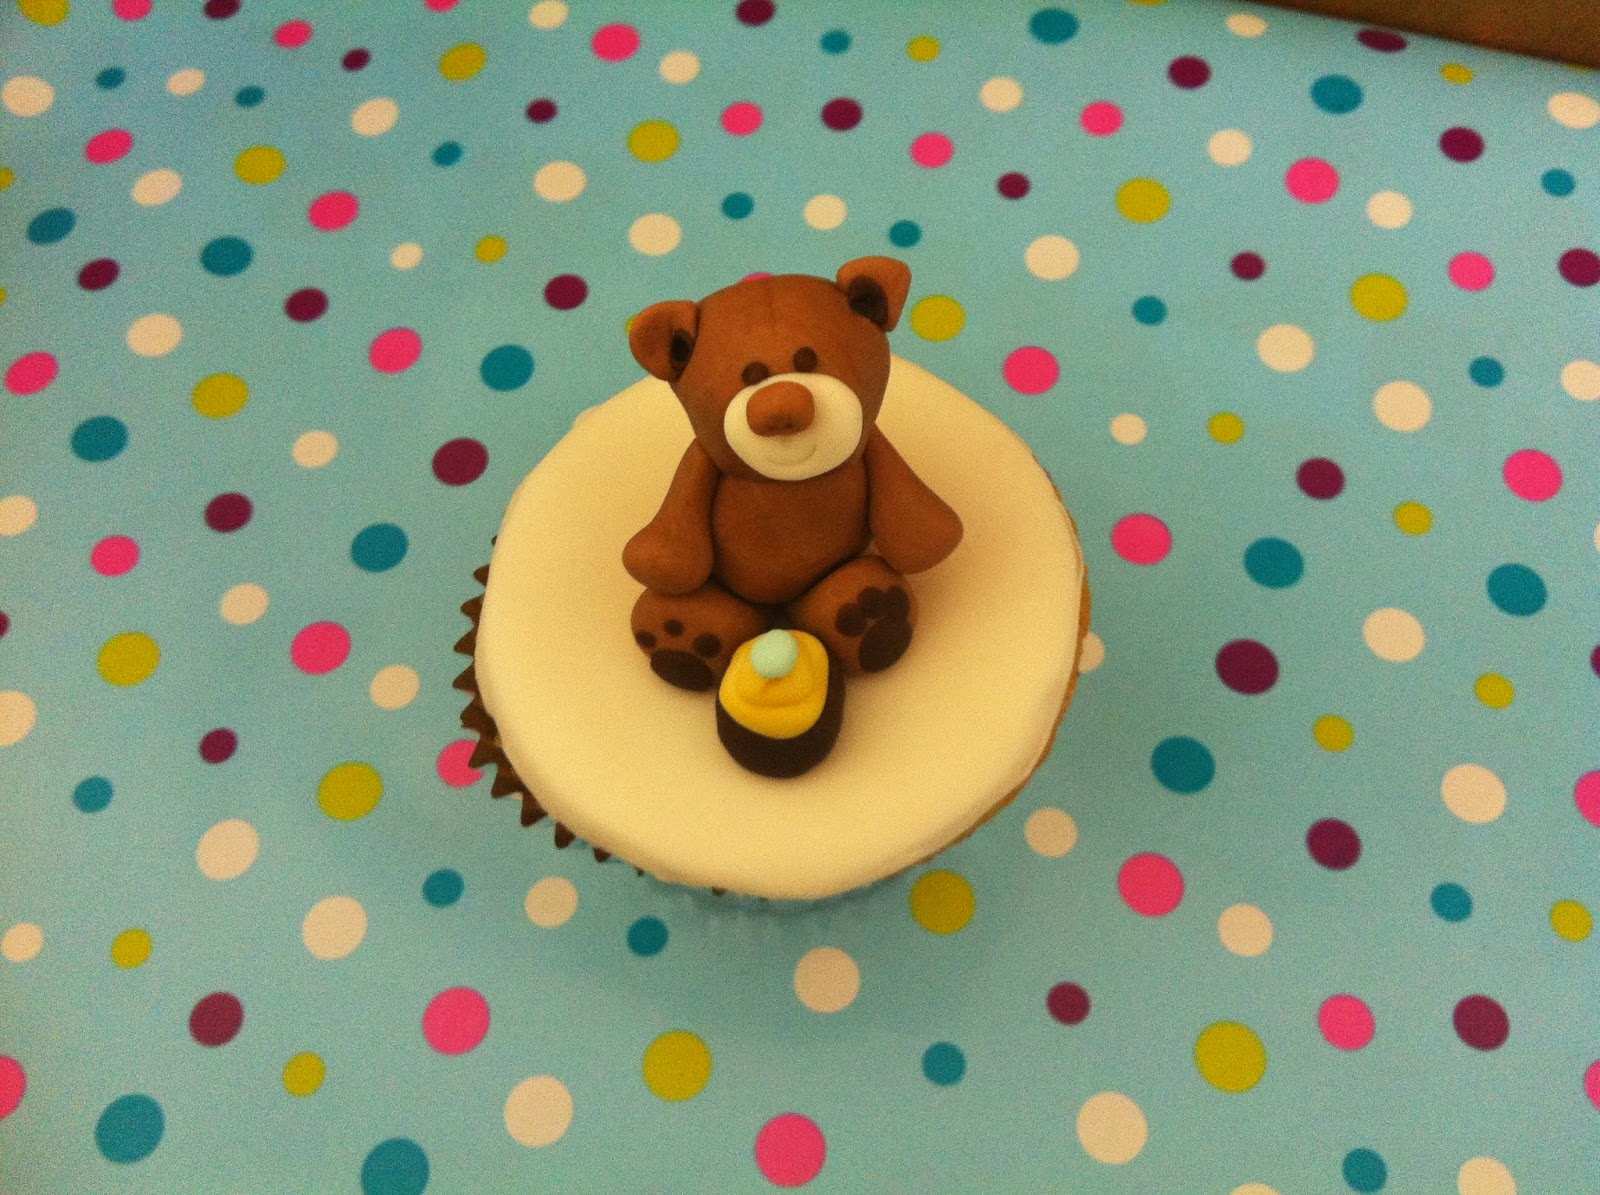 Cake Decorating Course Croydon : Making fondant teddy bear cupcakes and more..